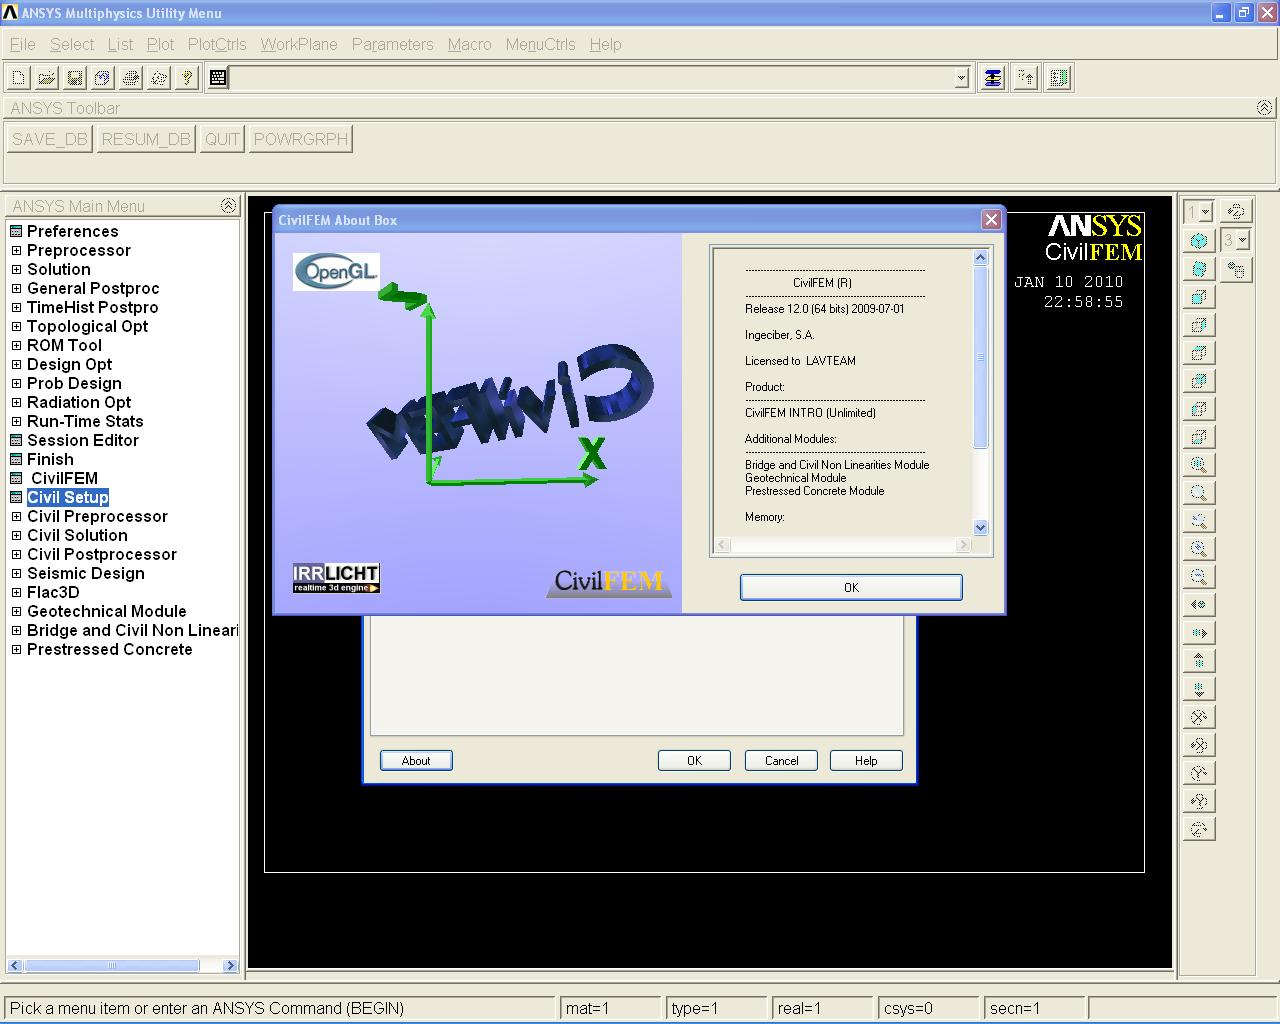 Working with CivilFEM v12.0 for ANSYS full license